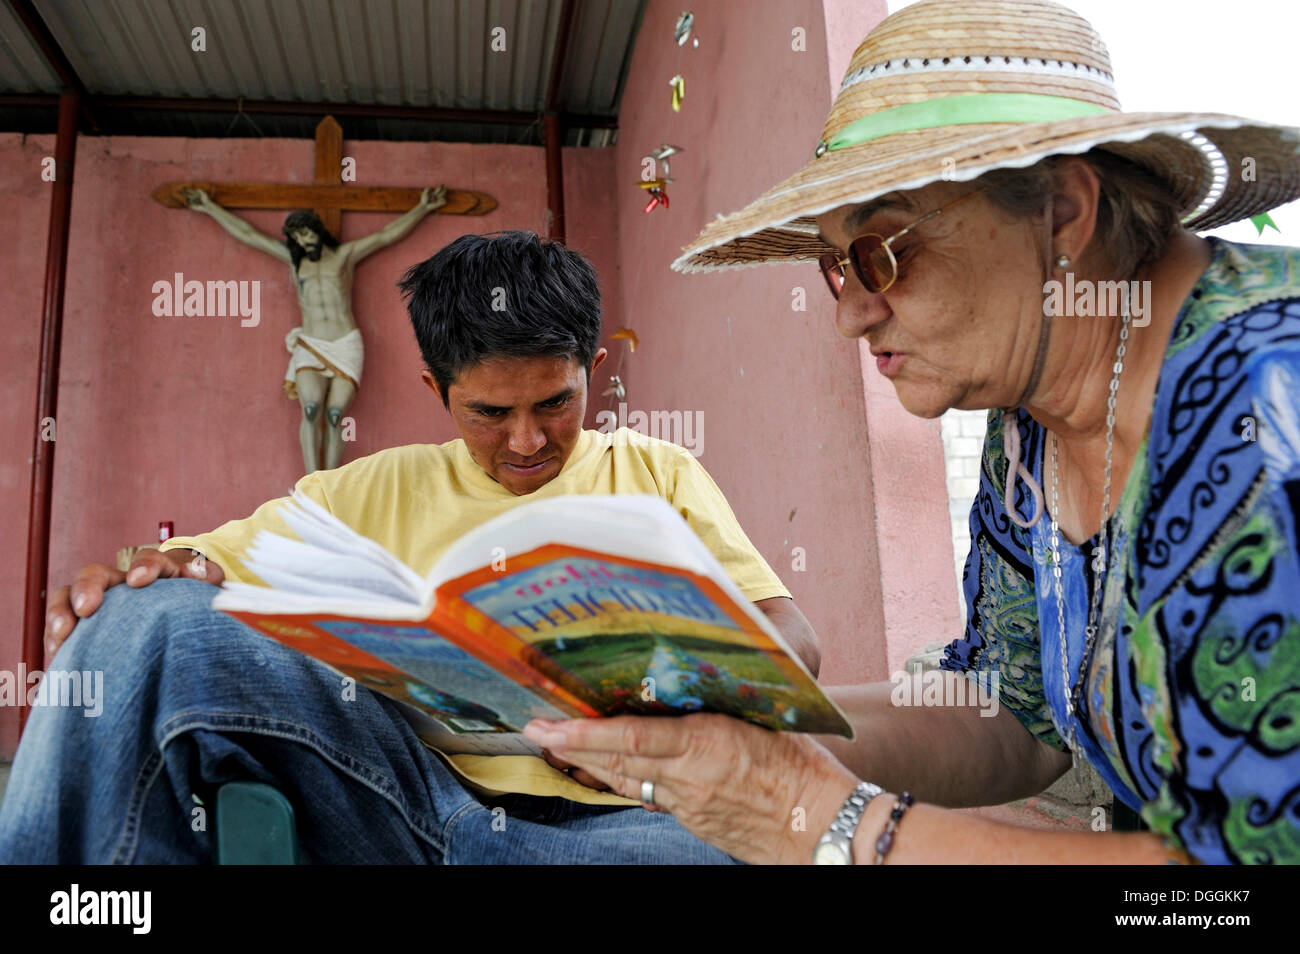 Elderly woman with sun hat teaching a young migrant to read, in a shelter for Latin American migrants, Ixtepec, Oaxaca, Mexico - Stock Image